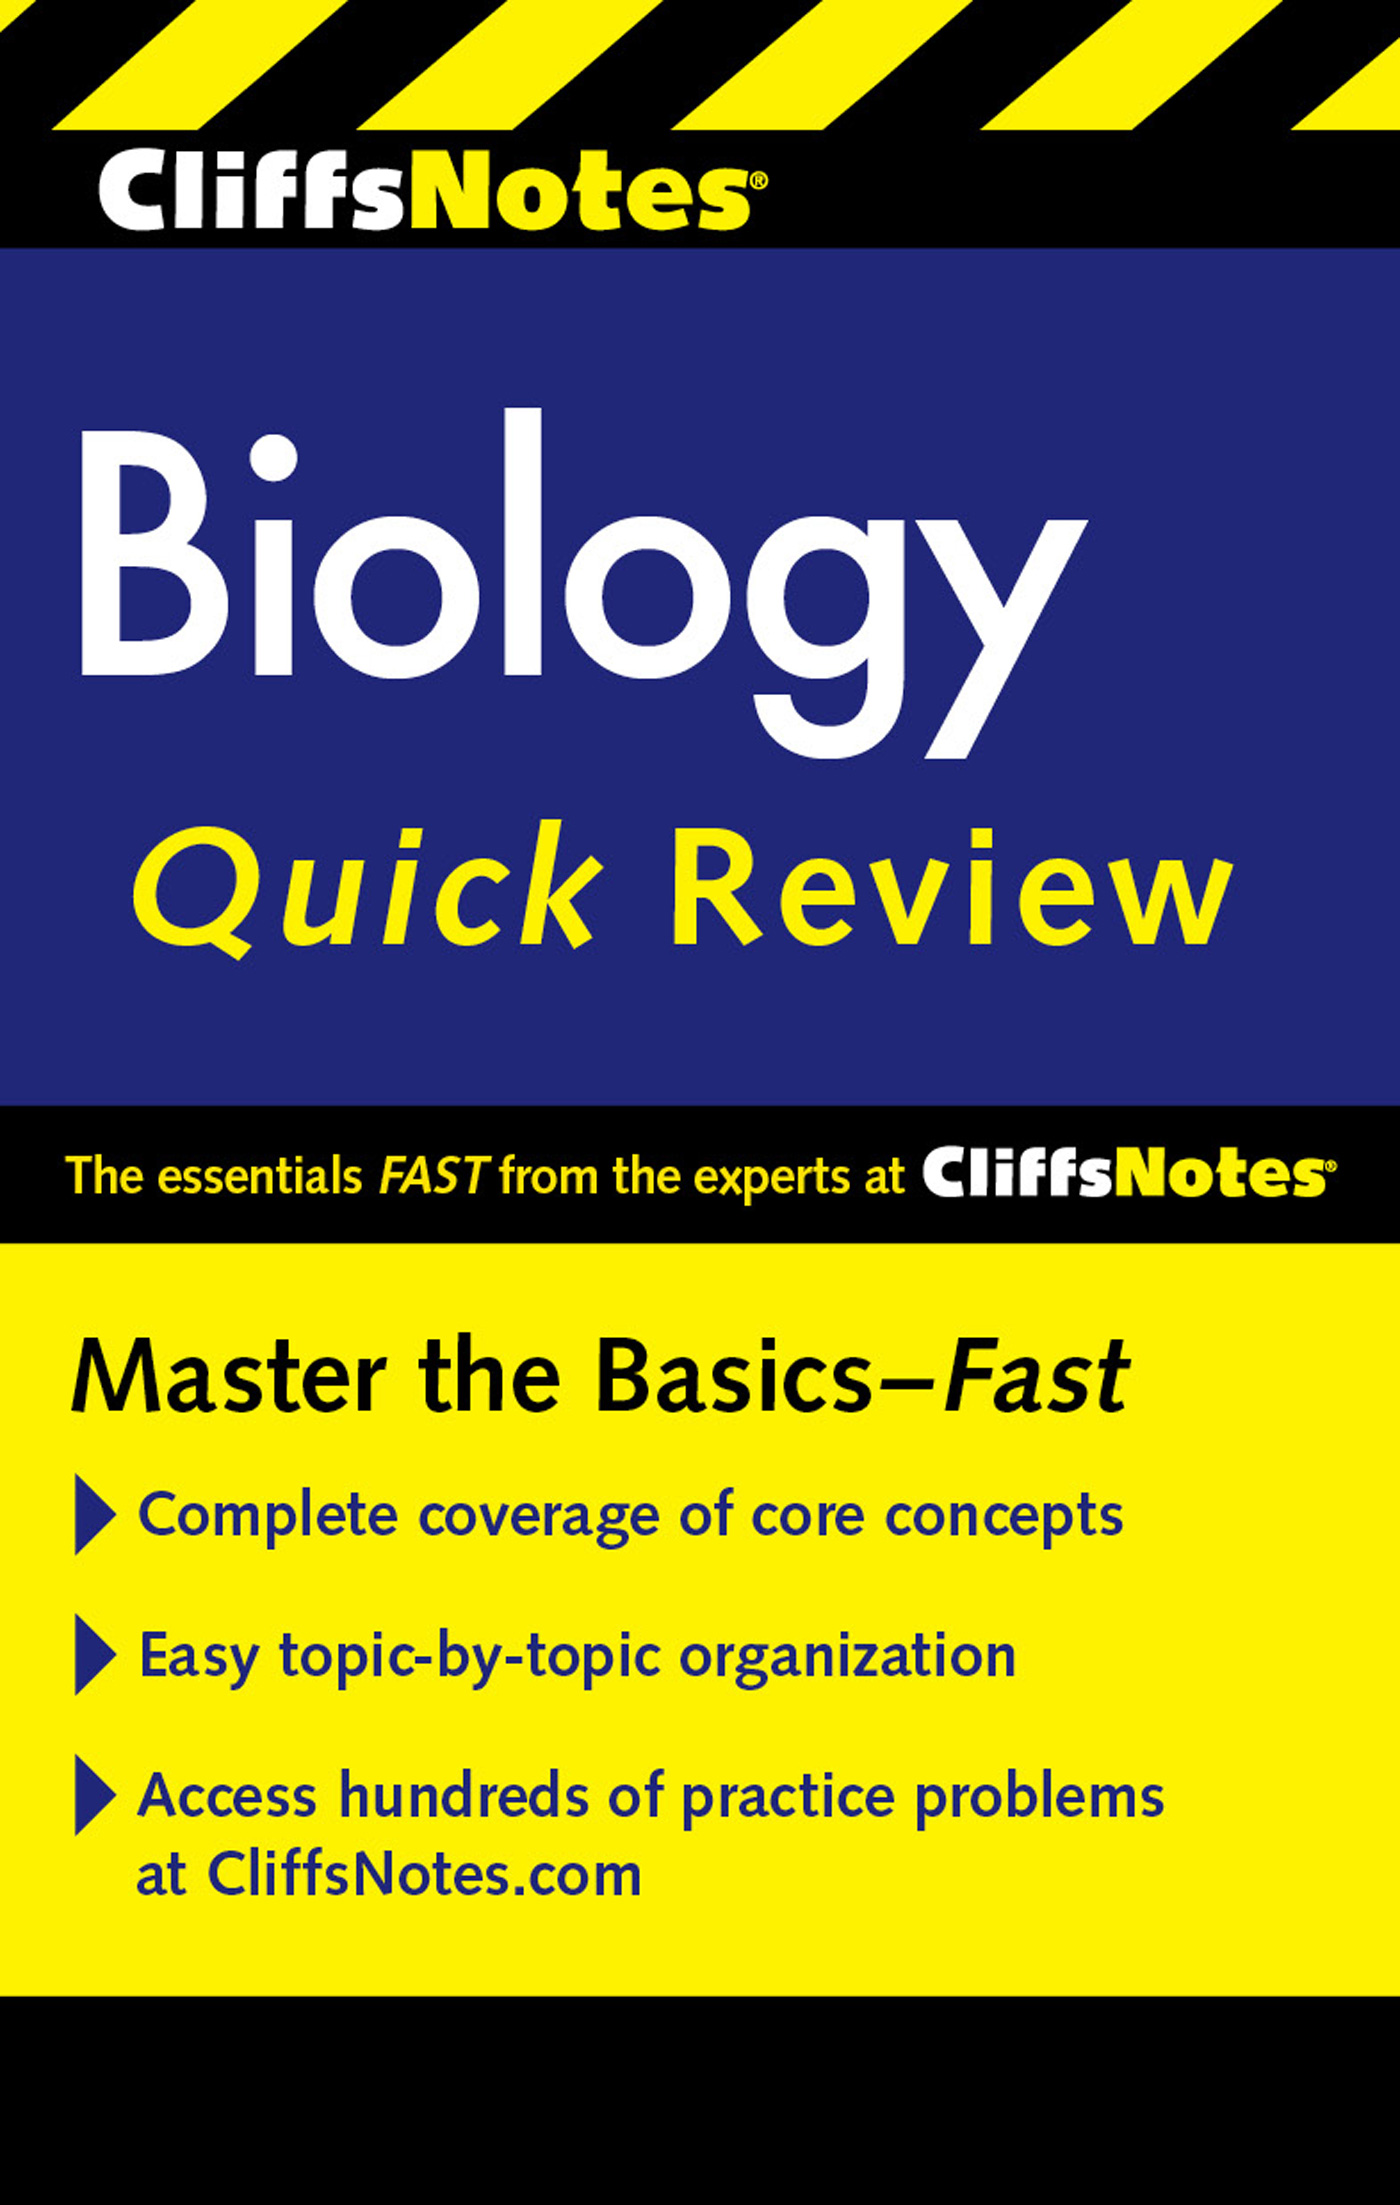 CliffsNotes Biology Quick Review Second Edition-9780544331679